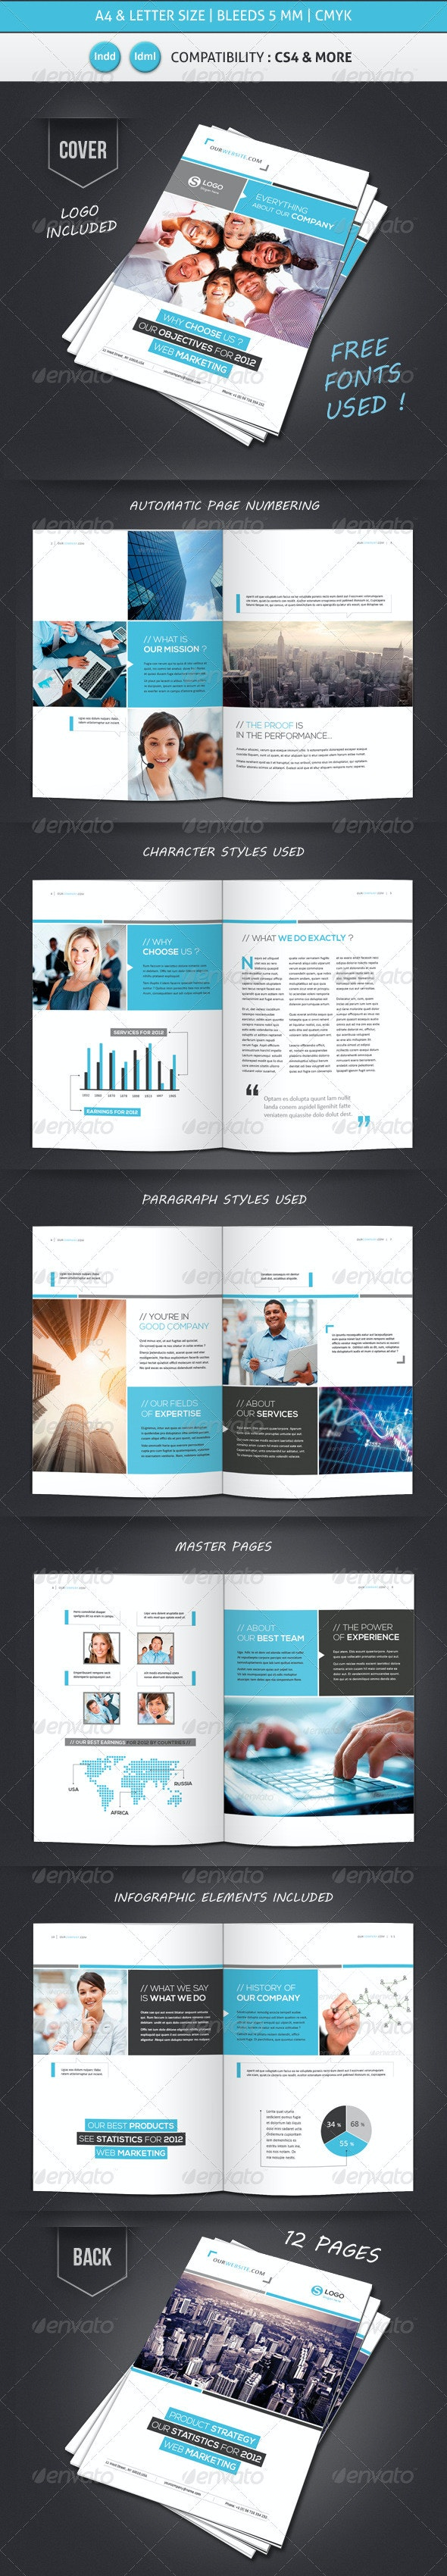 Business Brochure Template A4 & Letter 12 Pages - Corporate Brochures